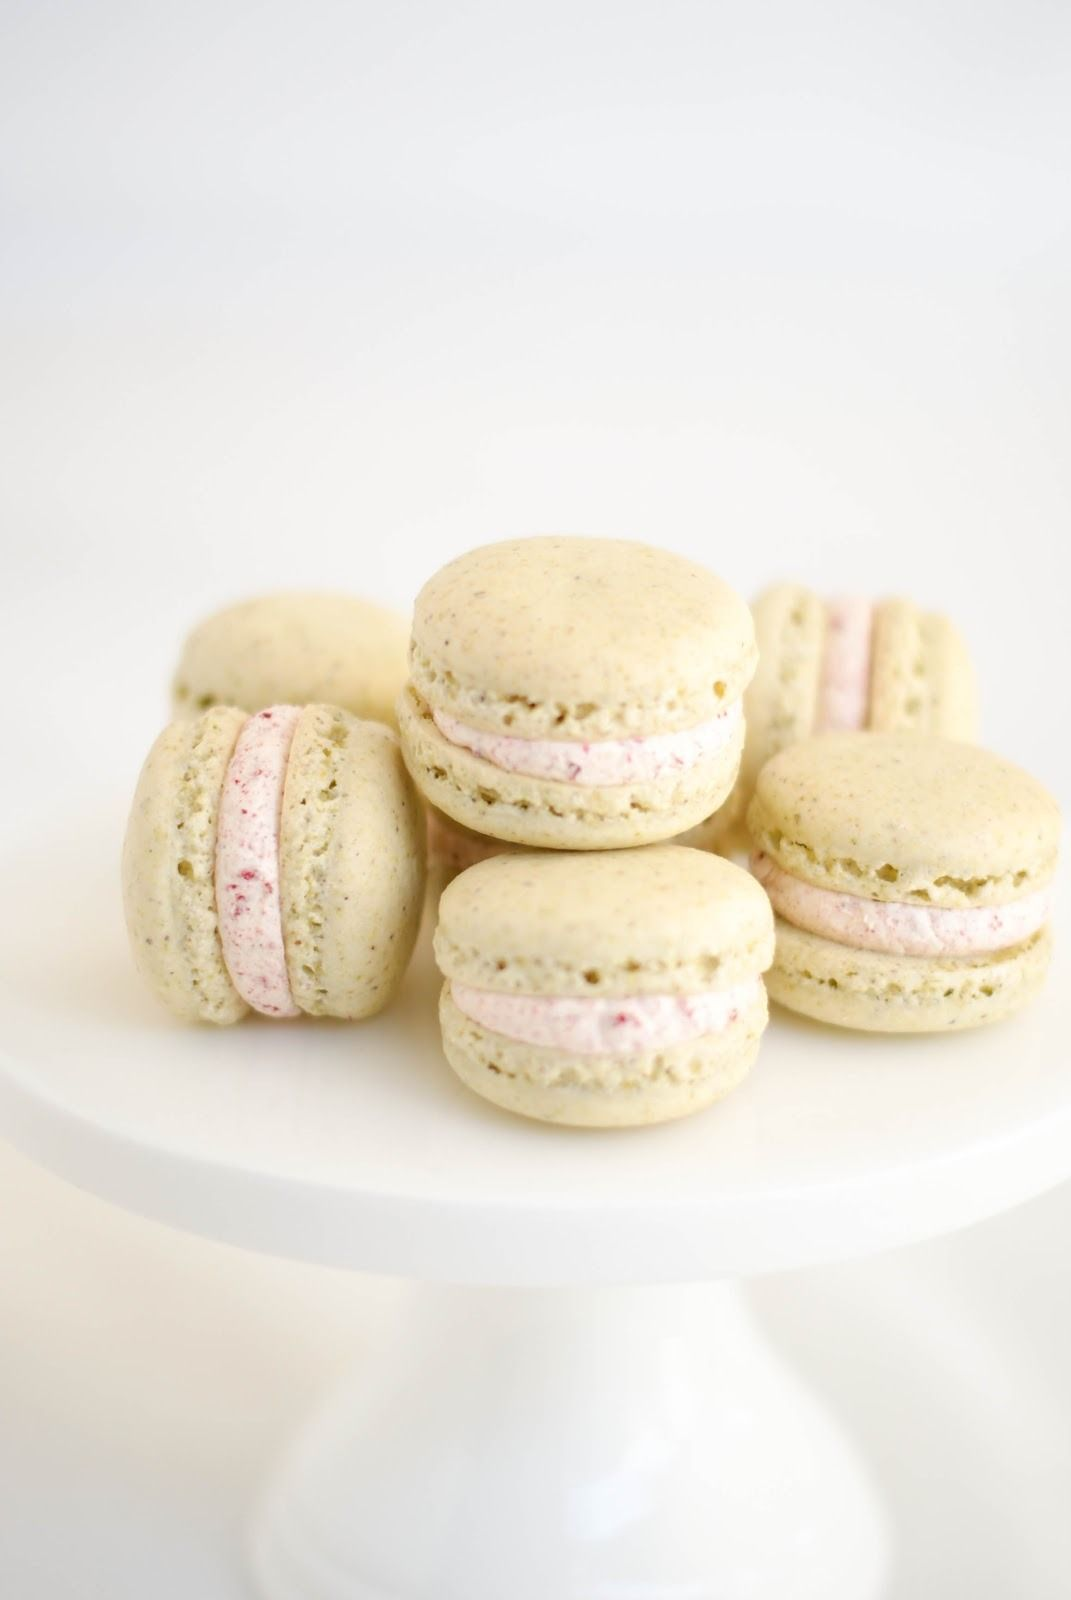 Pistachio Macarons with Raspberry and Vanilla Buttercream by Simmer and Boyle